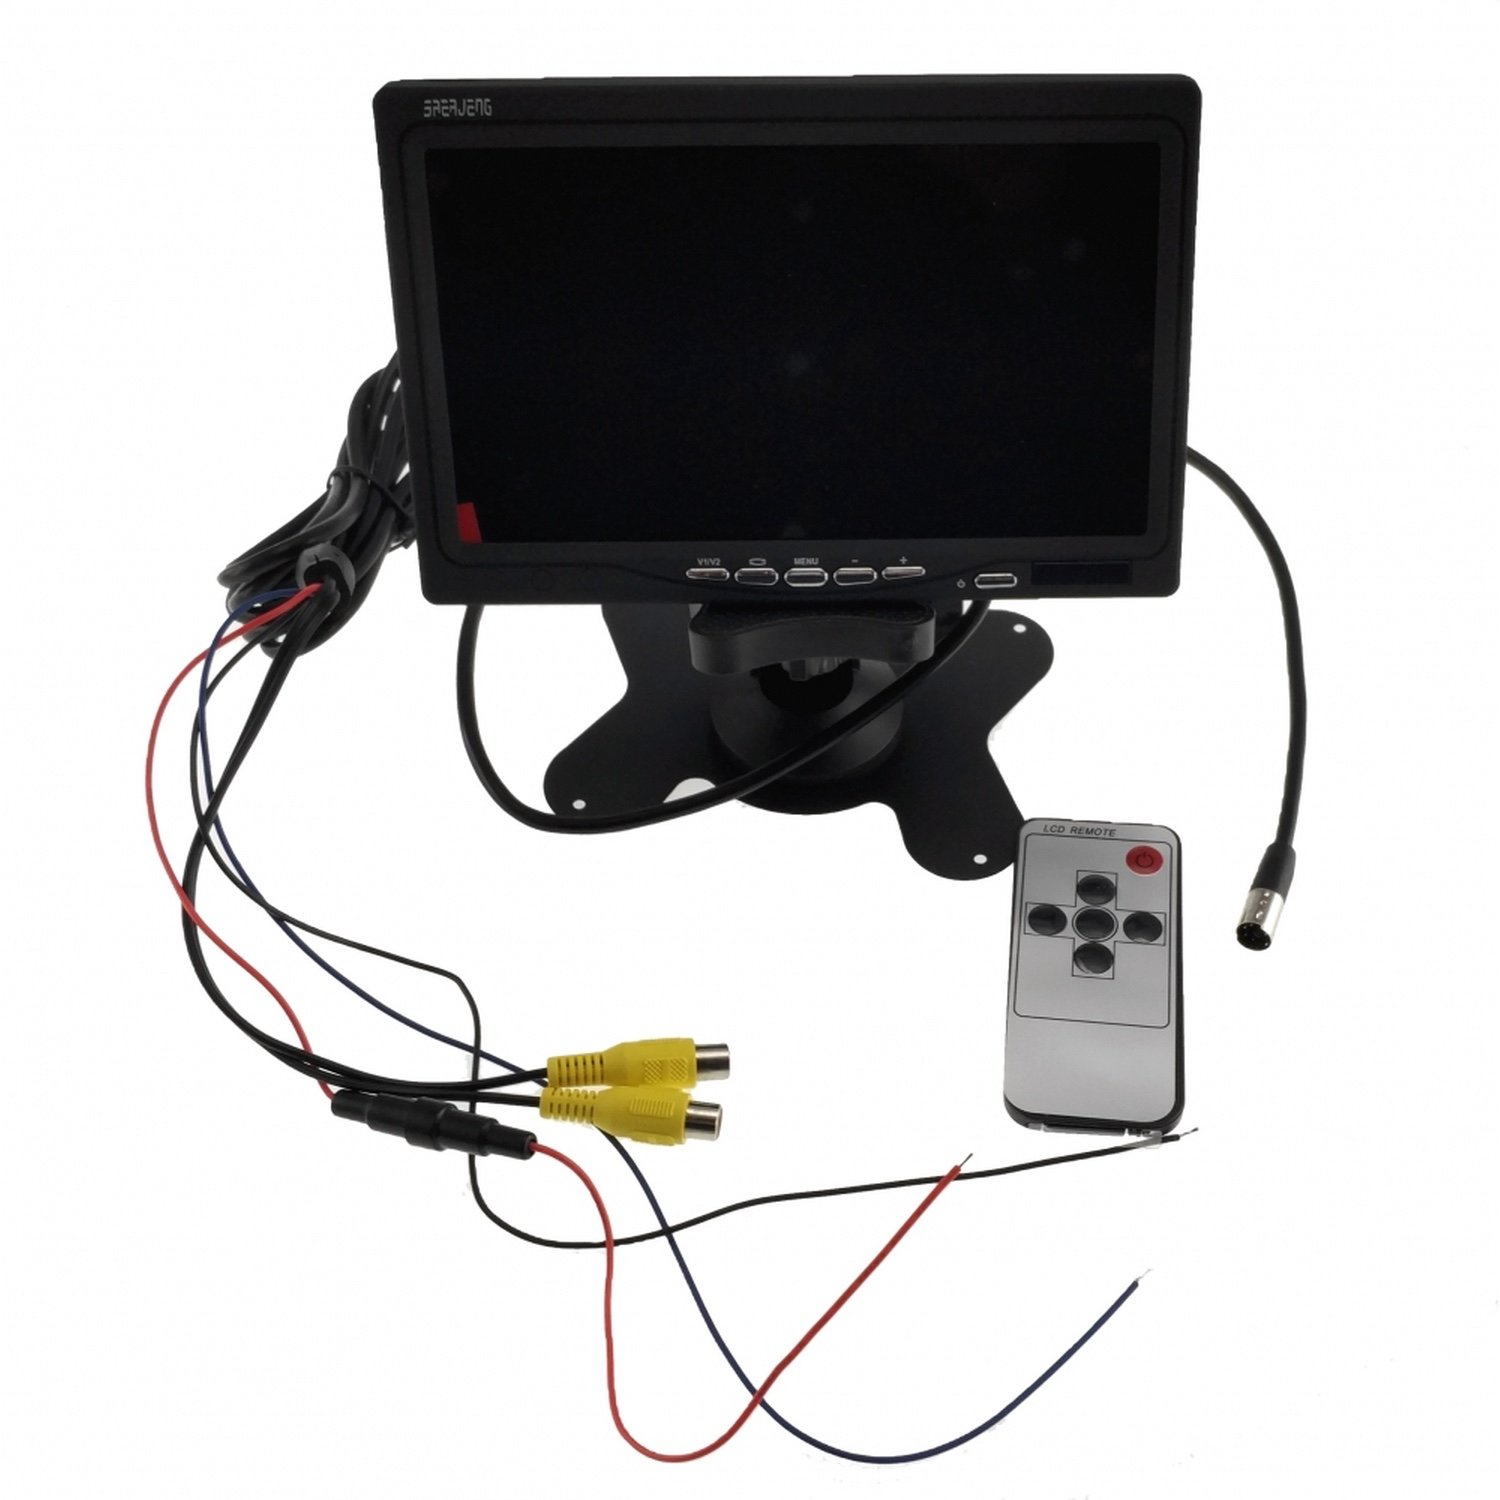 7 Inch Tft Color Lcd Car Rear View Camera Display Support Rotating The Screen And 2 Av Inputs